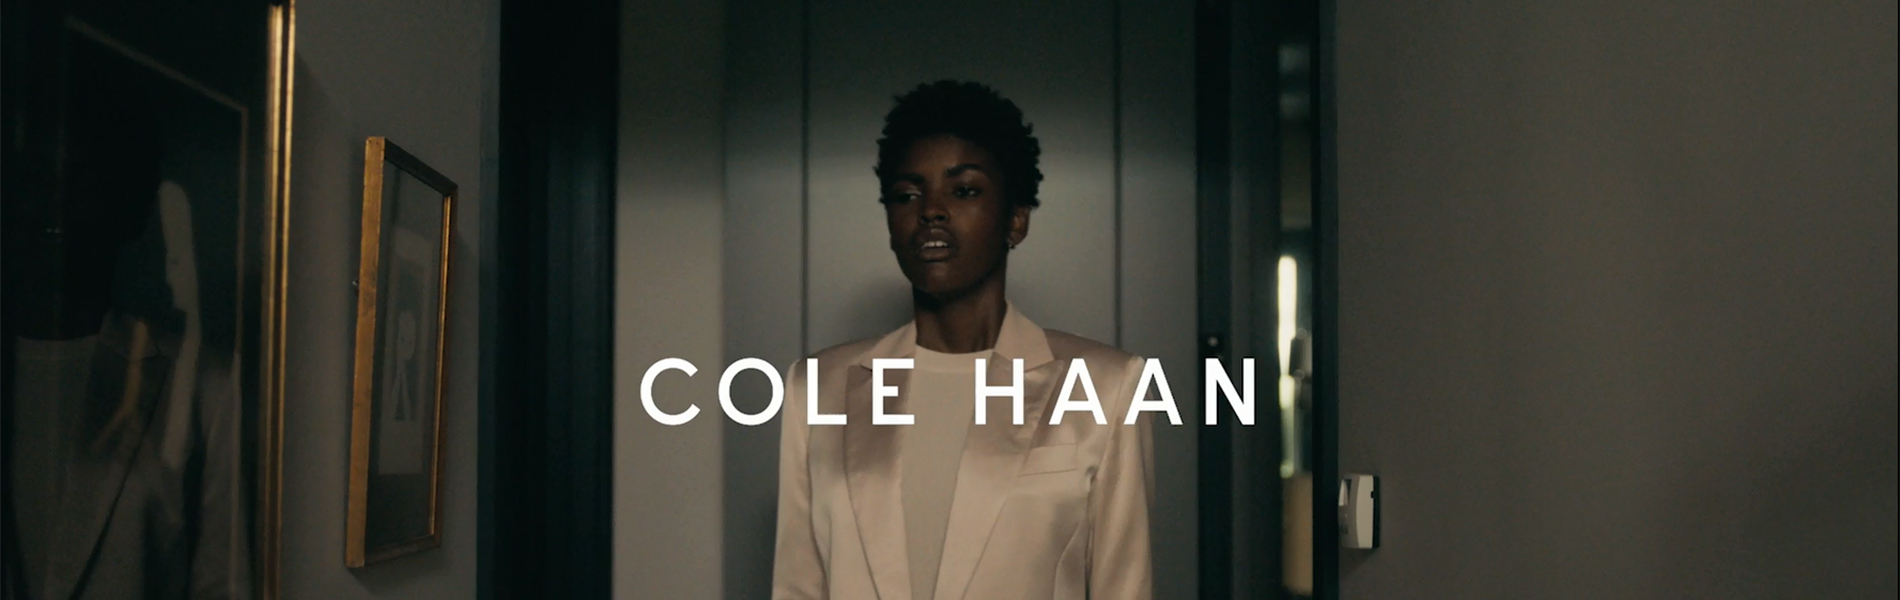 Play Video: Cole Haan Grand Ambition